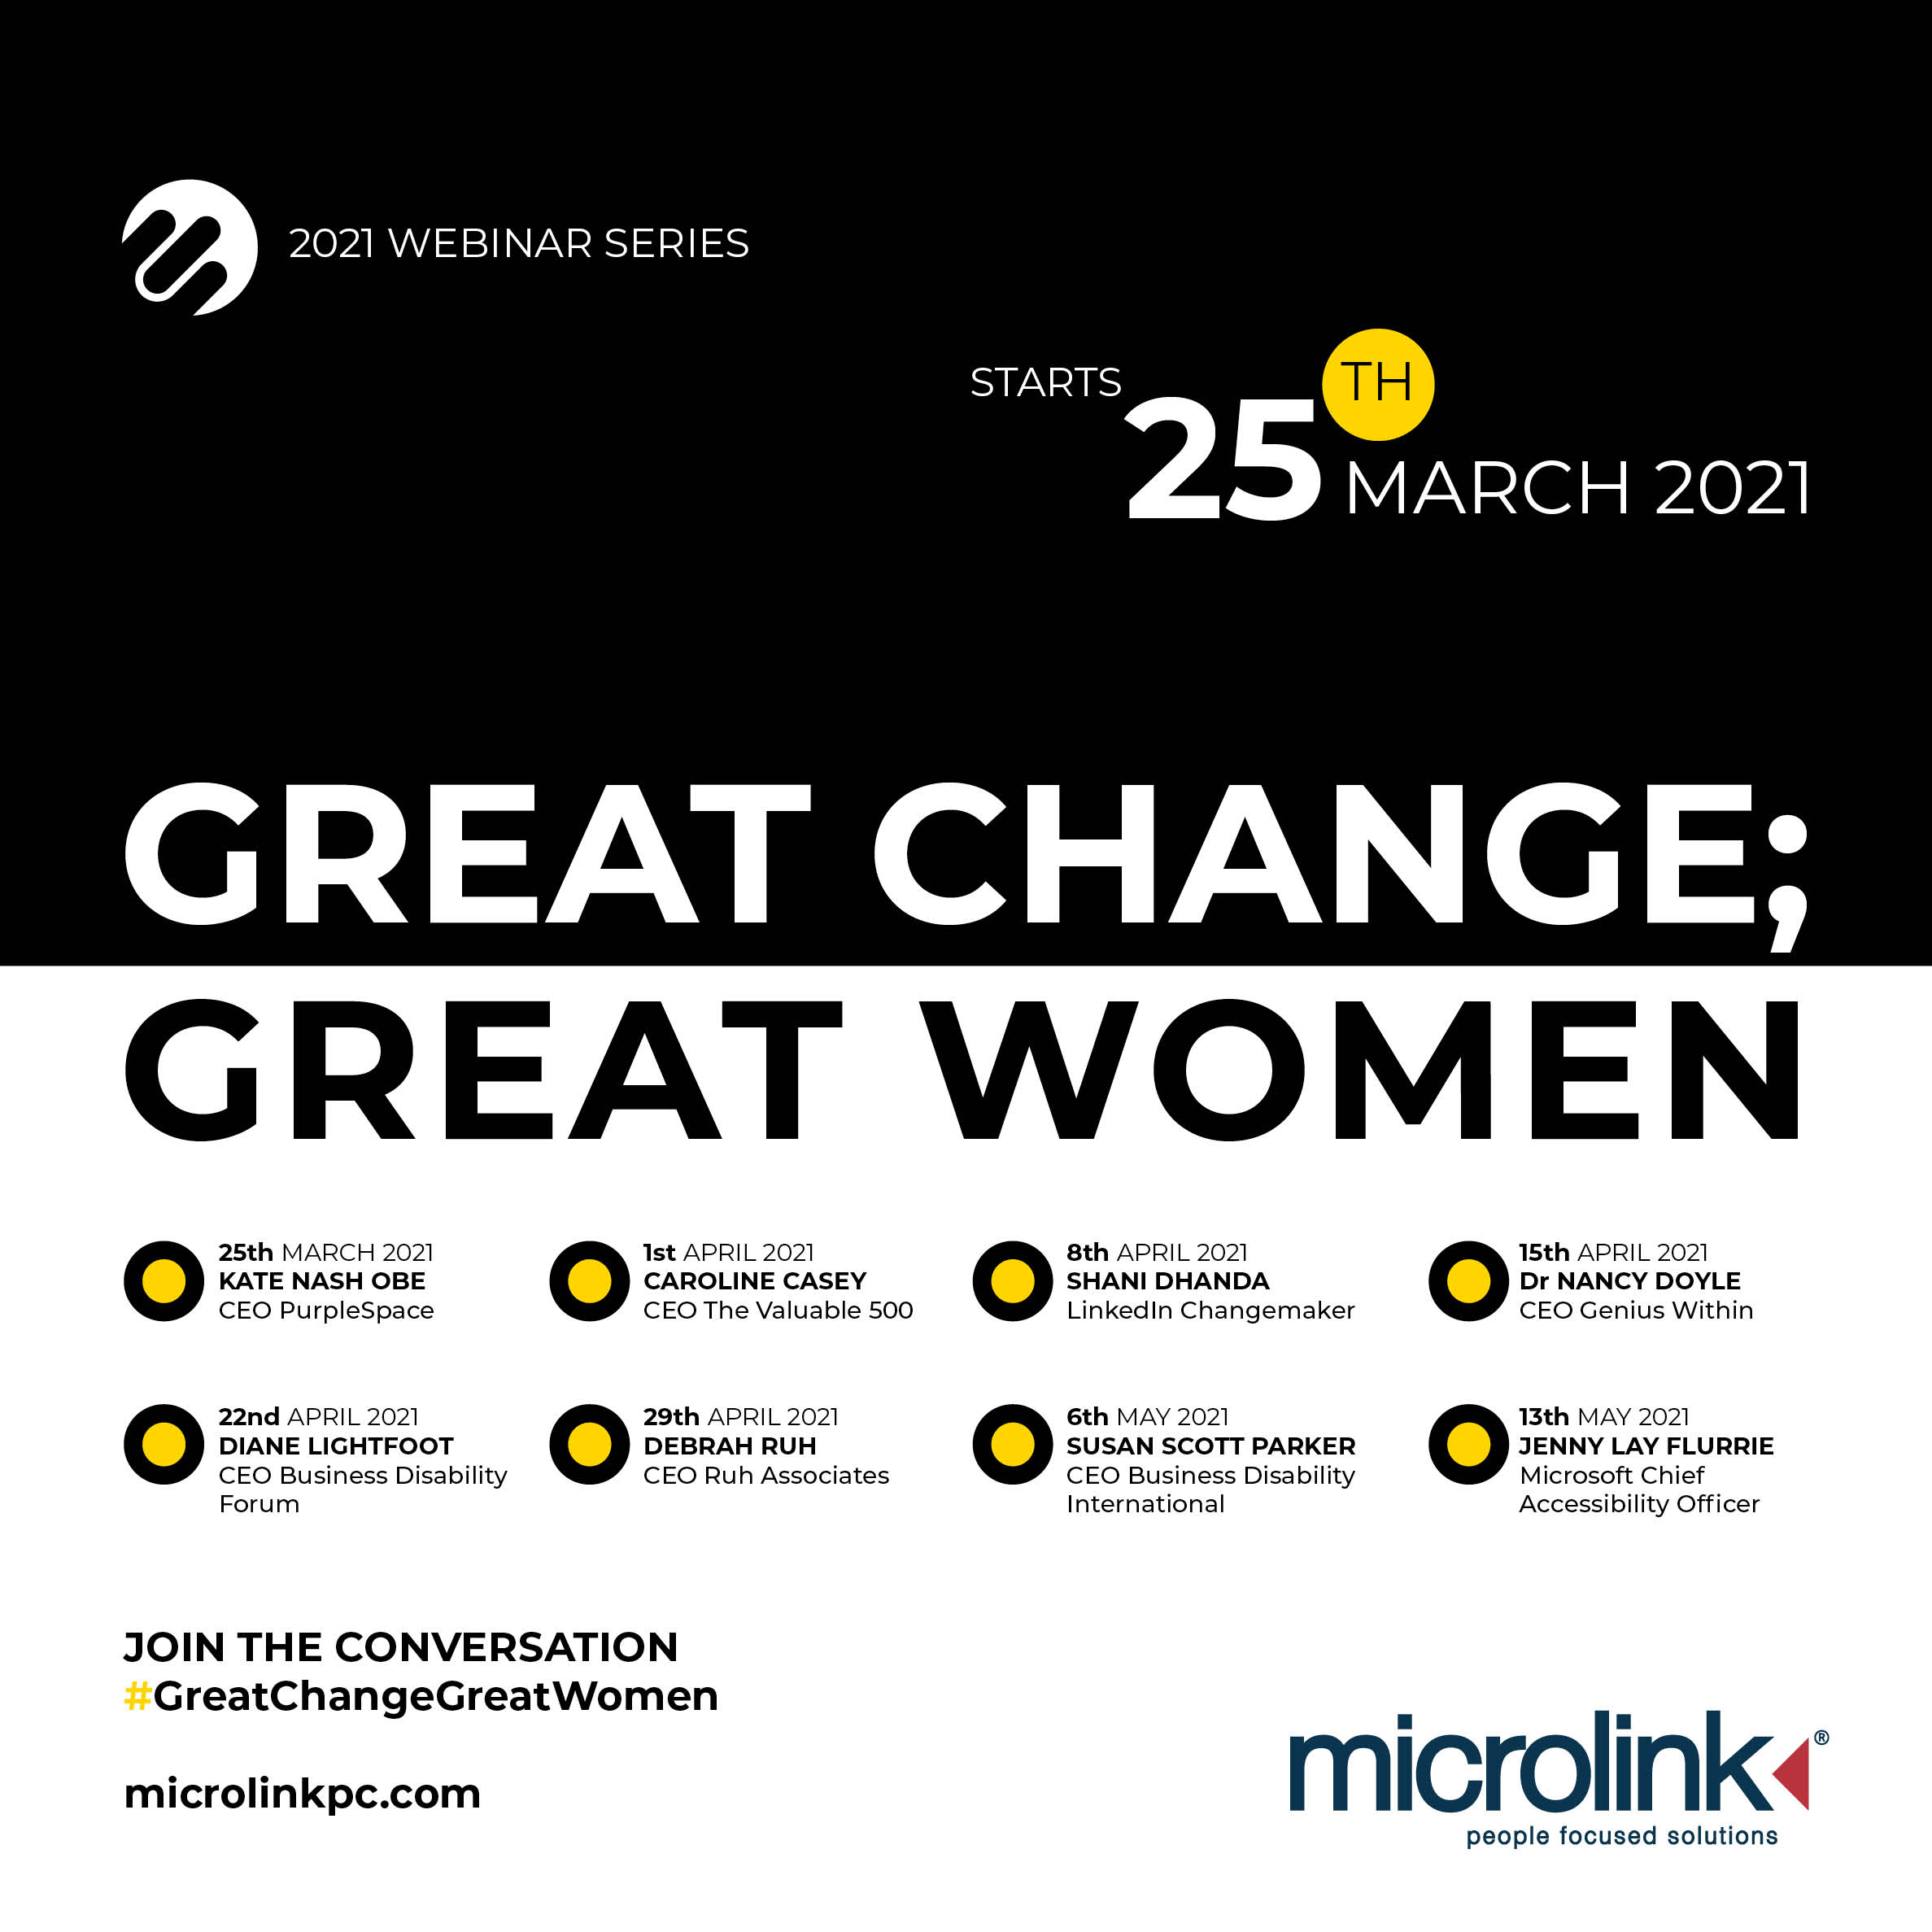 great change great women webinar series